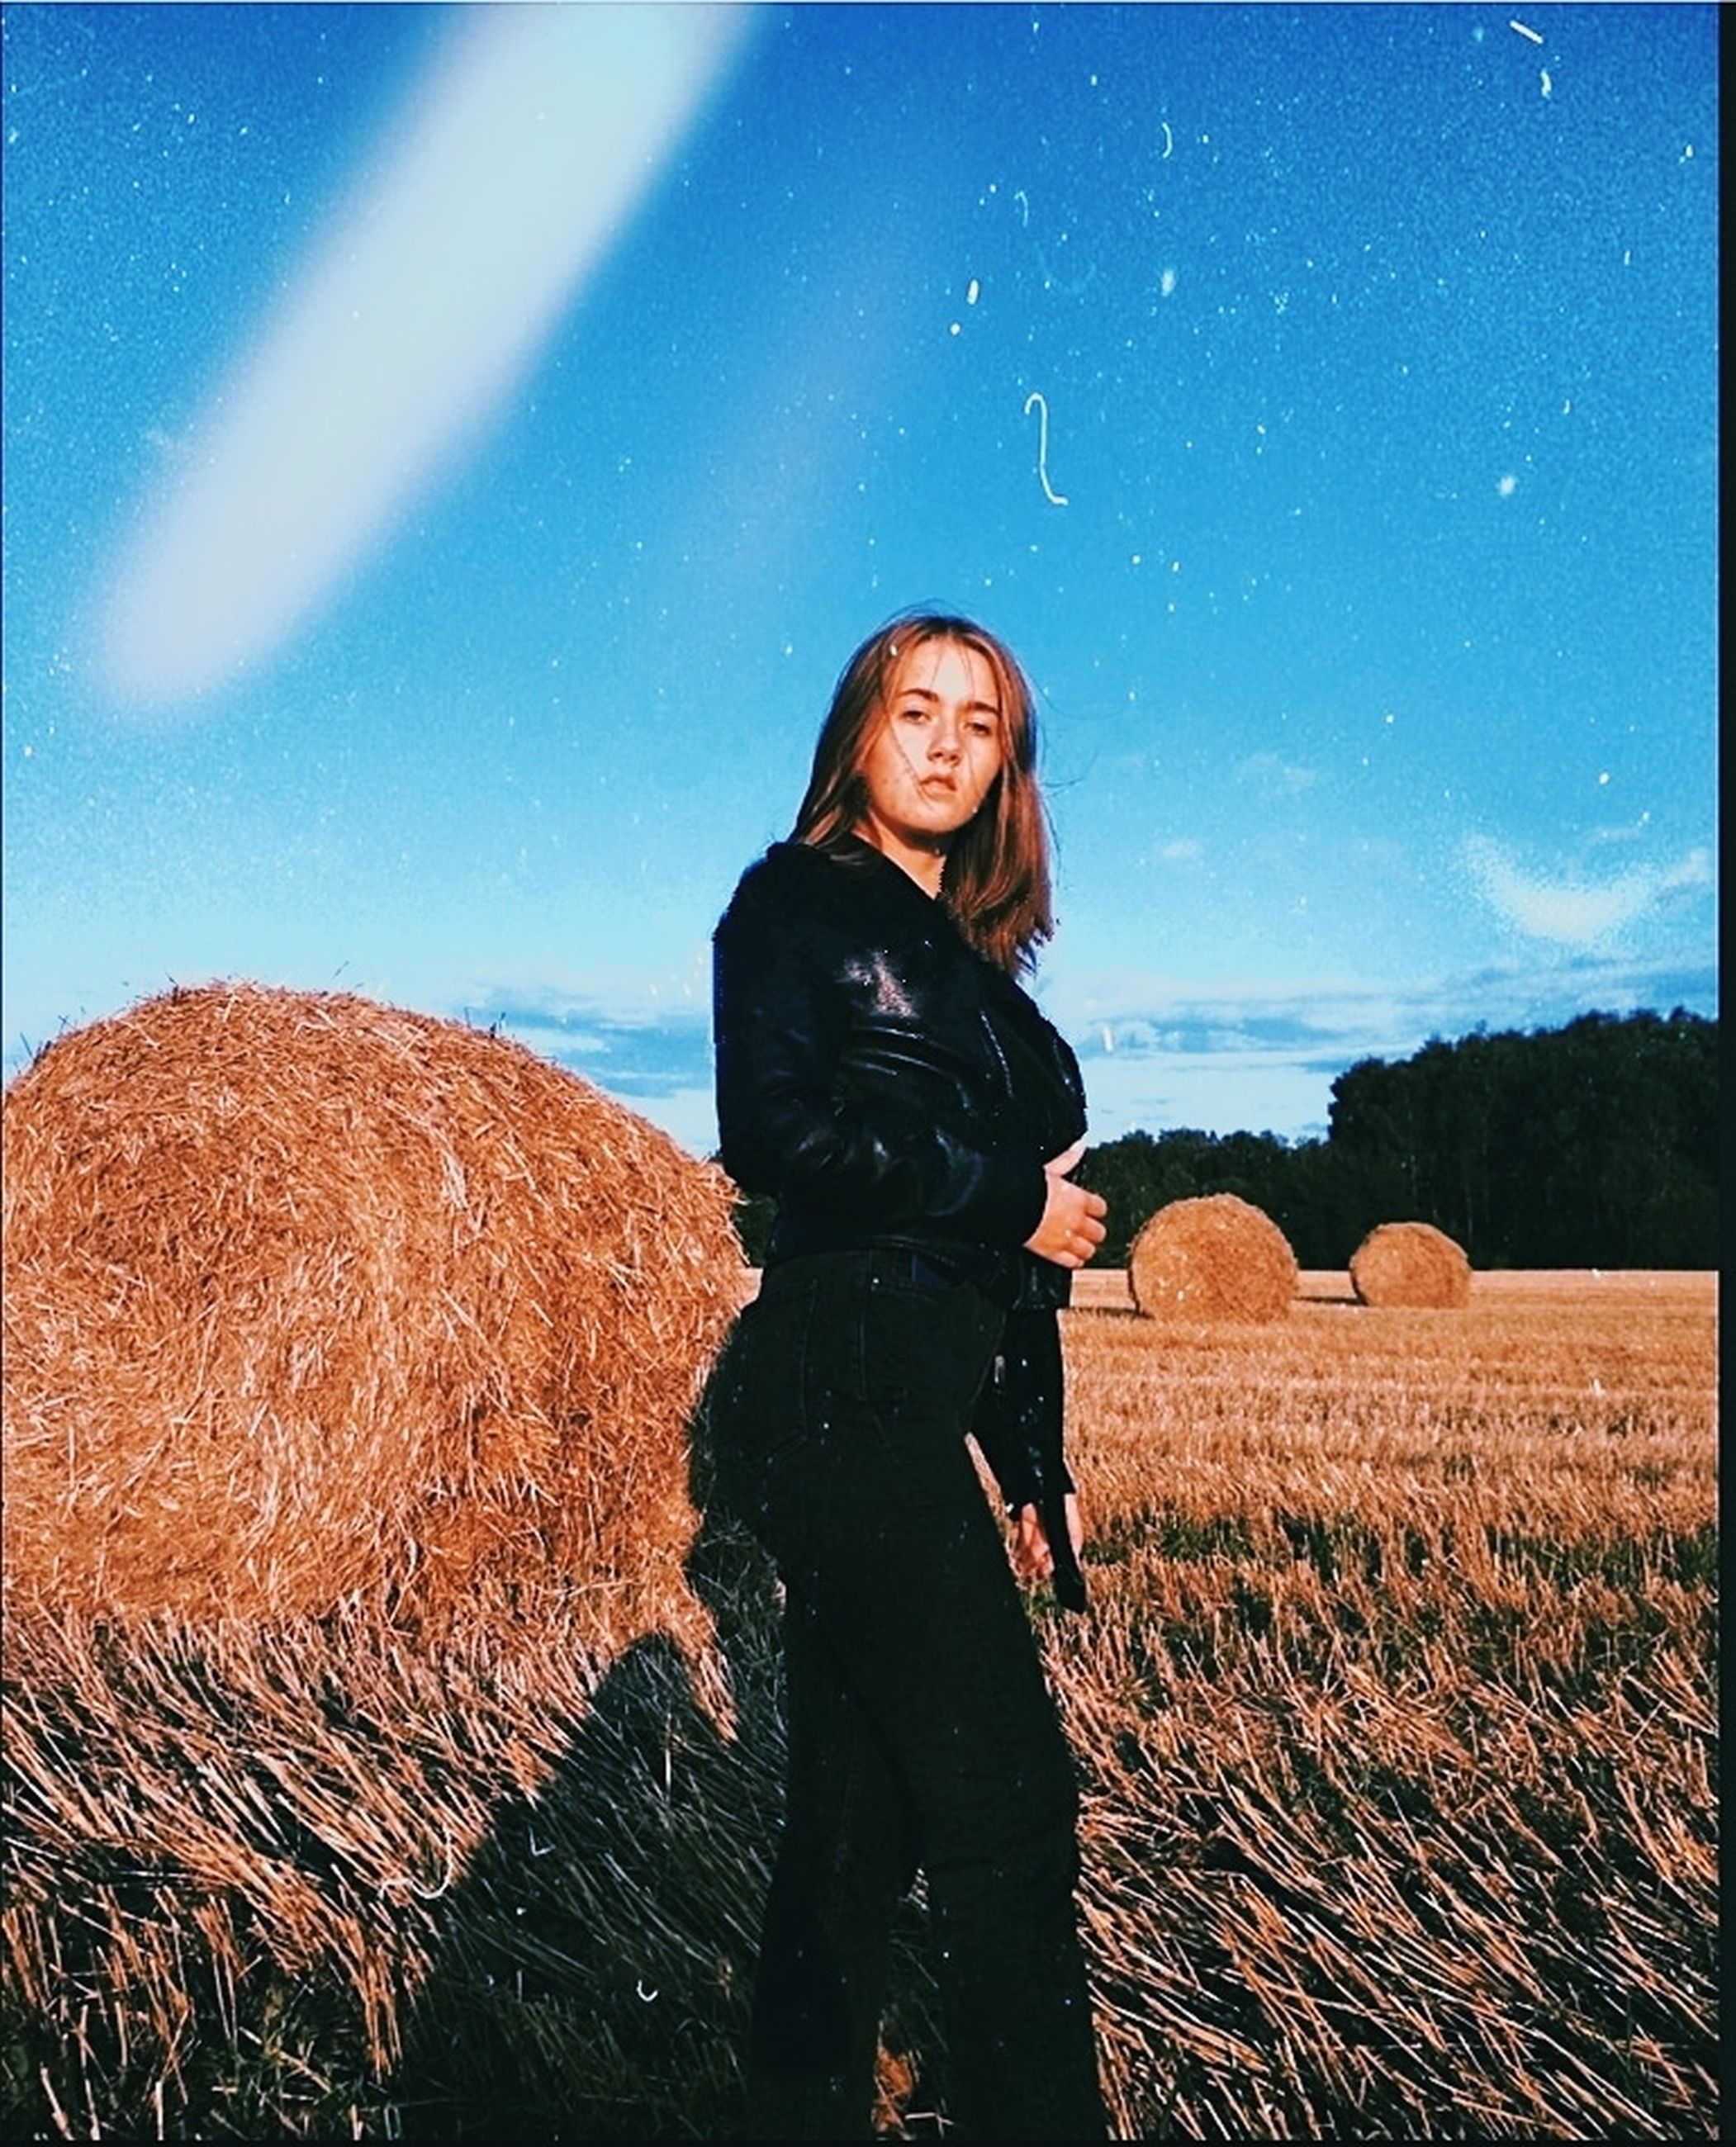 field, one person, real people, land, young women, sky, lifestyles, young adult, leisure activity, standing, nature, three quarter length, casual clothing, farm, environment, plant, women, landscape, outdoors, beautiful woman, hairstyle